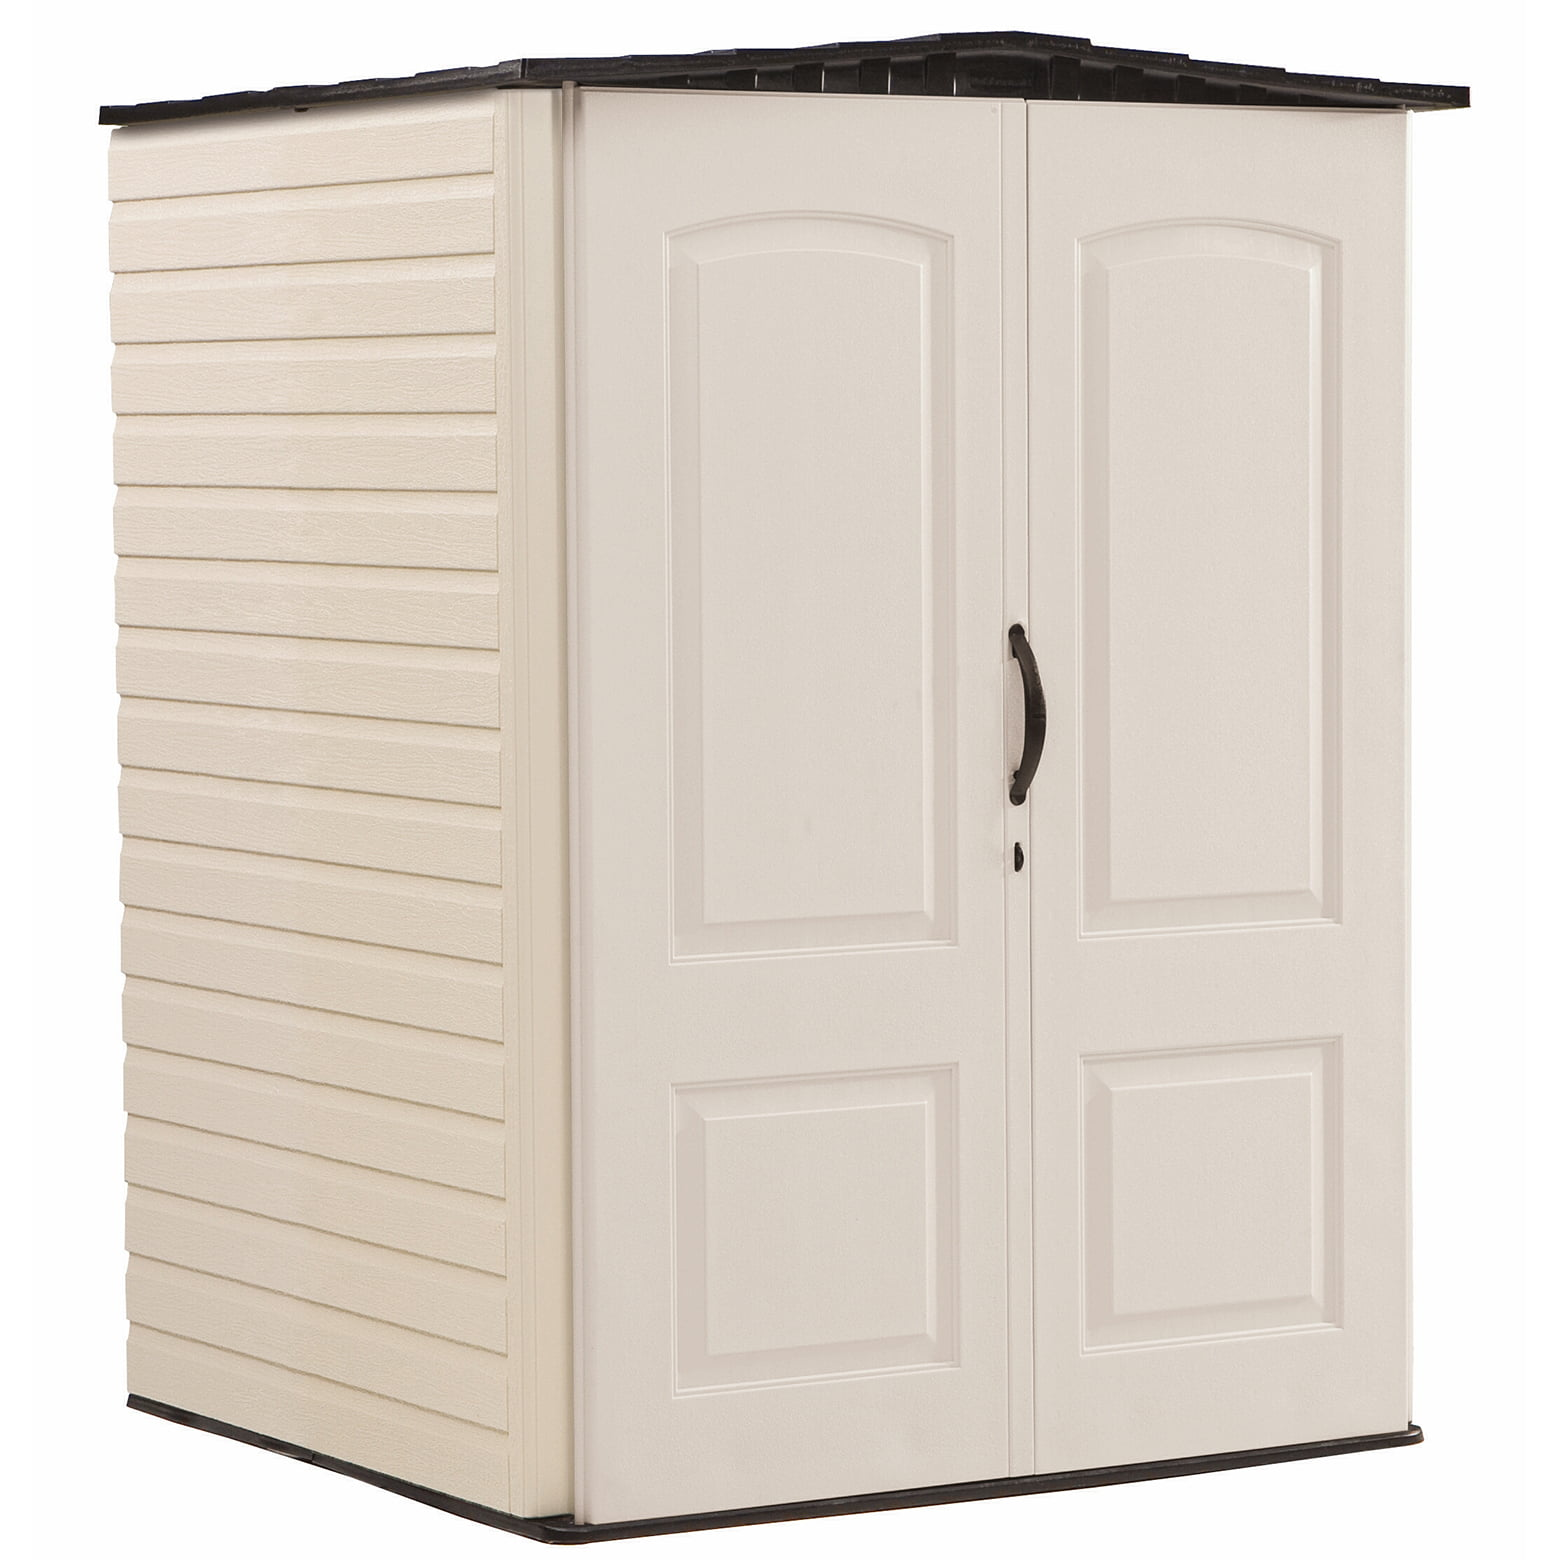 Rubbermaid 5 x 4 ft Medium Storage Shed, Sandstone & Onyx by Rubbermaid Home Products